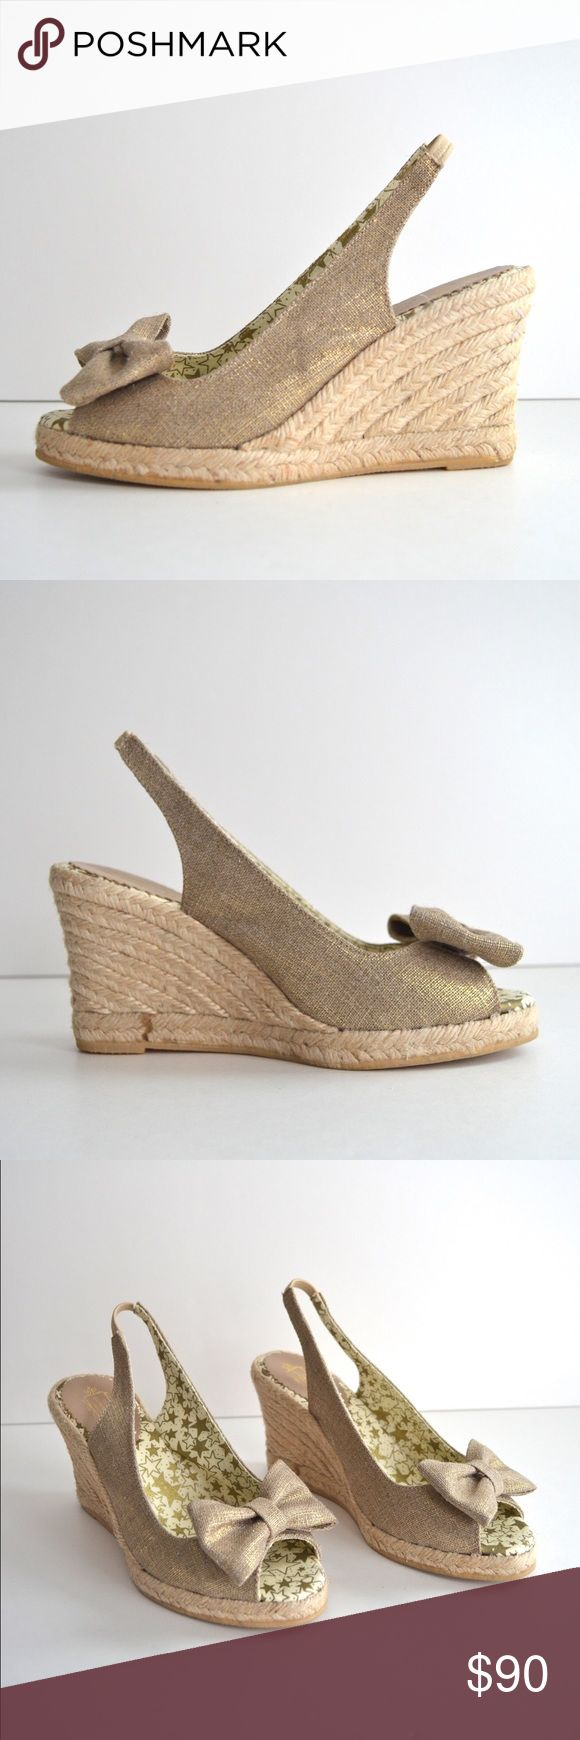 """NIB Lulu Guinnes Metallic Espadrille Wedges These Lulu Guinness espadrille peep toe wedges will add an understated feminine flair with classic bows and natural materials.   - Gold metallic canvas material  - Lined with a fun star patterned cotton fabric - Rubber soles - 3.5"""" heel - 3/4 inch platform - Elasticized slingback straps - Brand new condition and have never been worn, only tried on.  - Originally purchased at Neiman Marcus  ✅Bundles ❌Trades/Holds Lulu Guinness Shoes Wedges"""